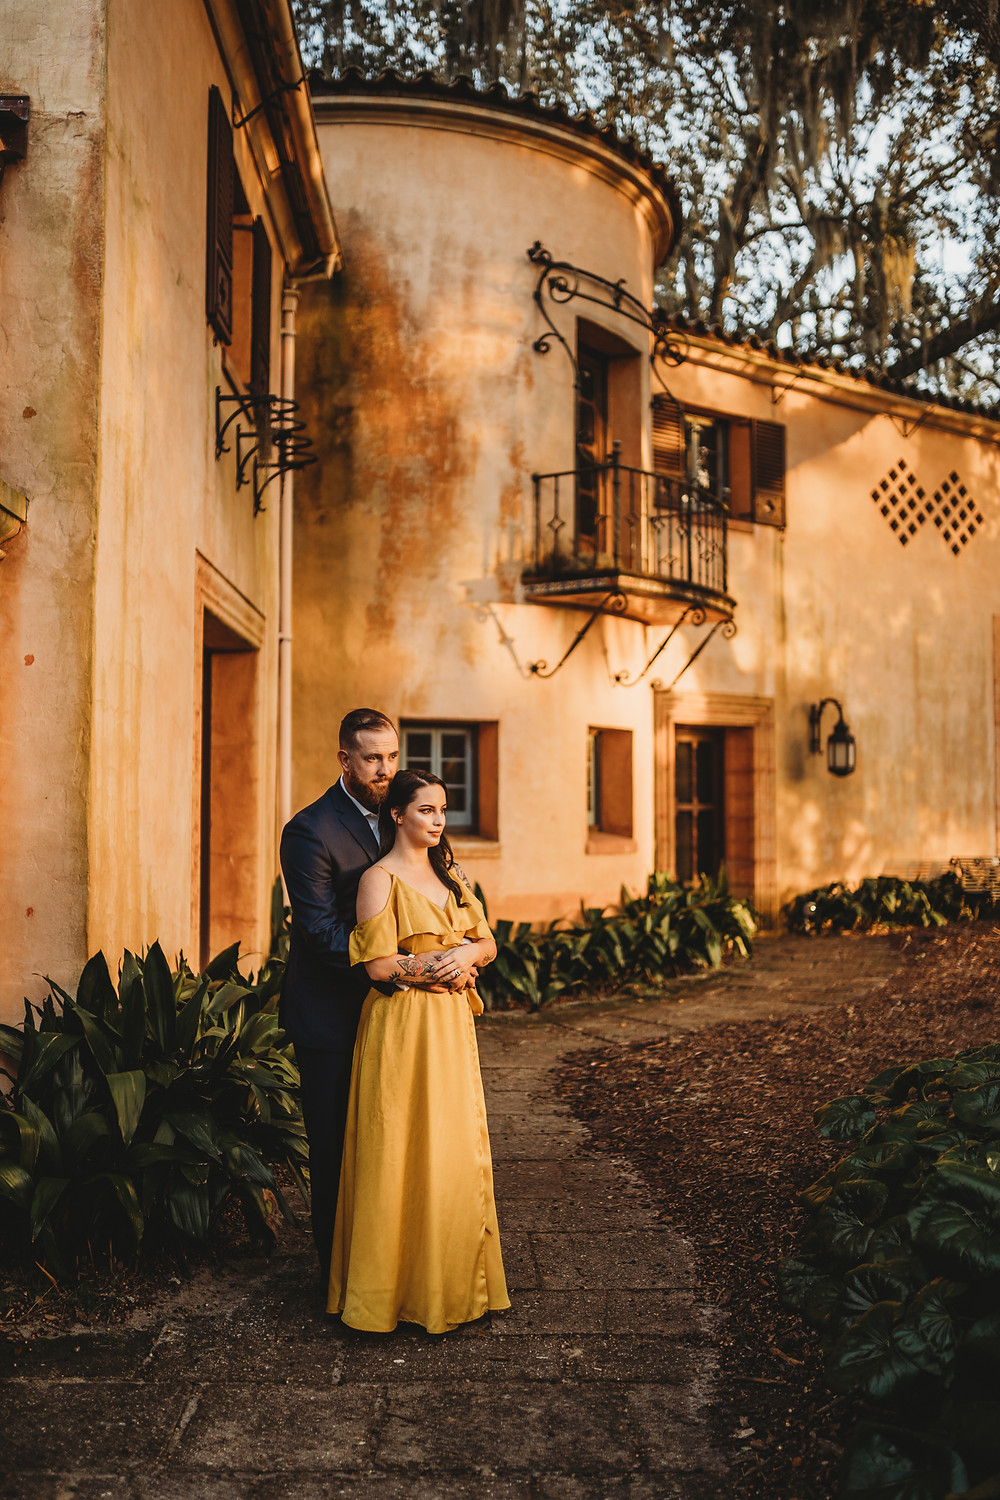 man standing behind woman in front of a rustic building watching the sunset